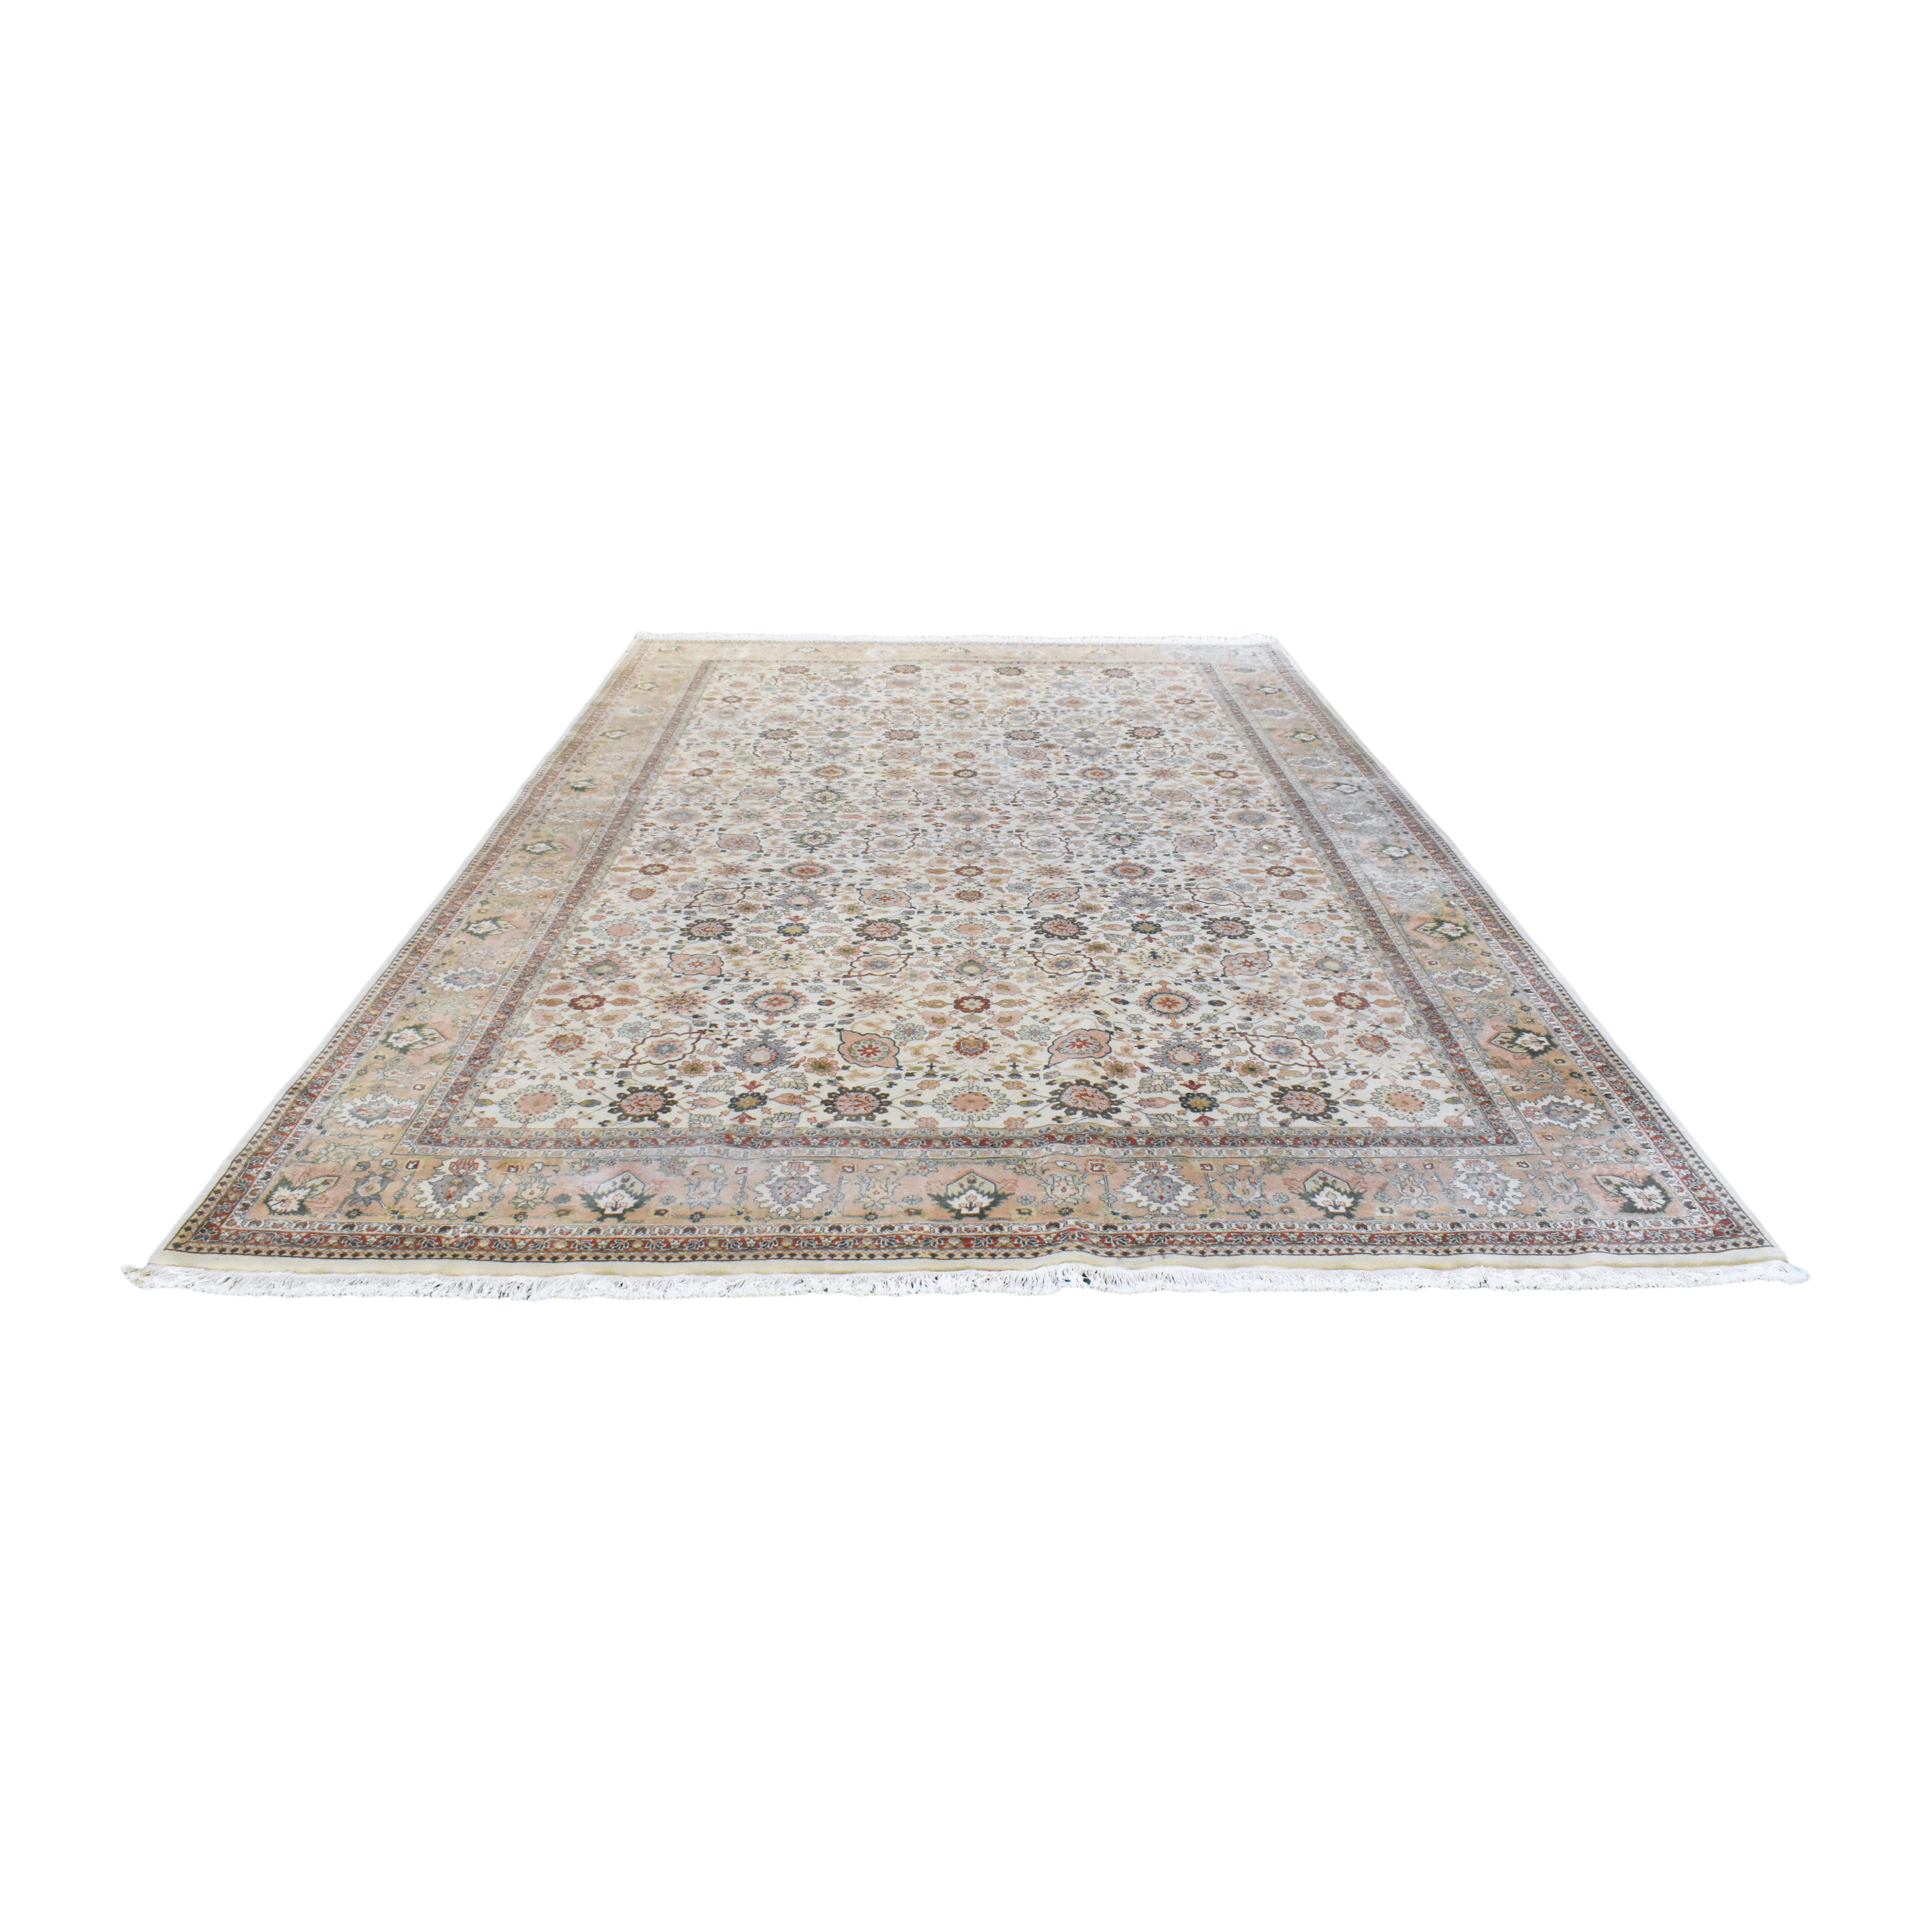 Traditional Patterned Area Rug / Rugs